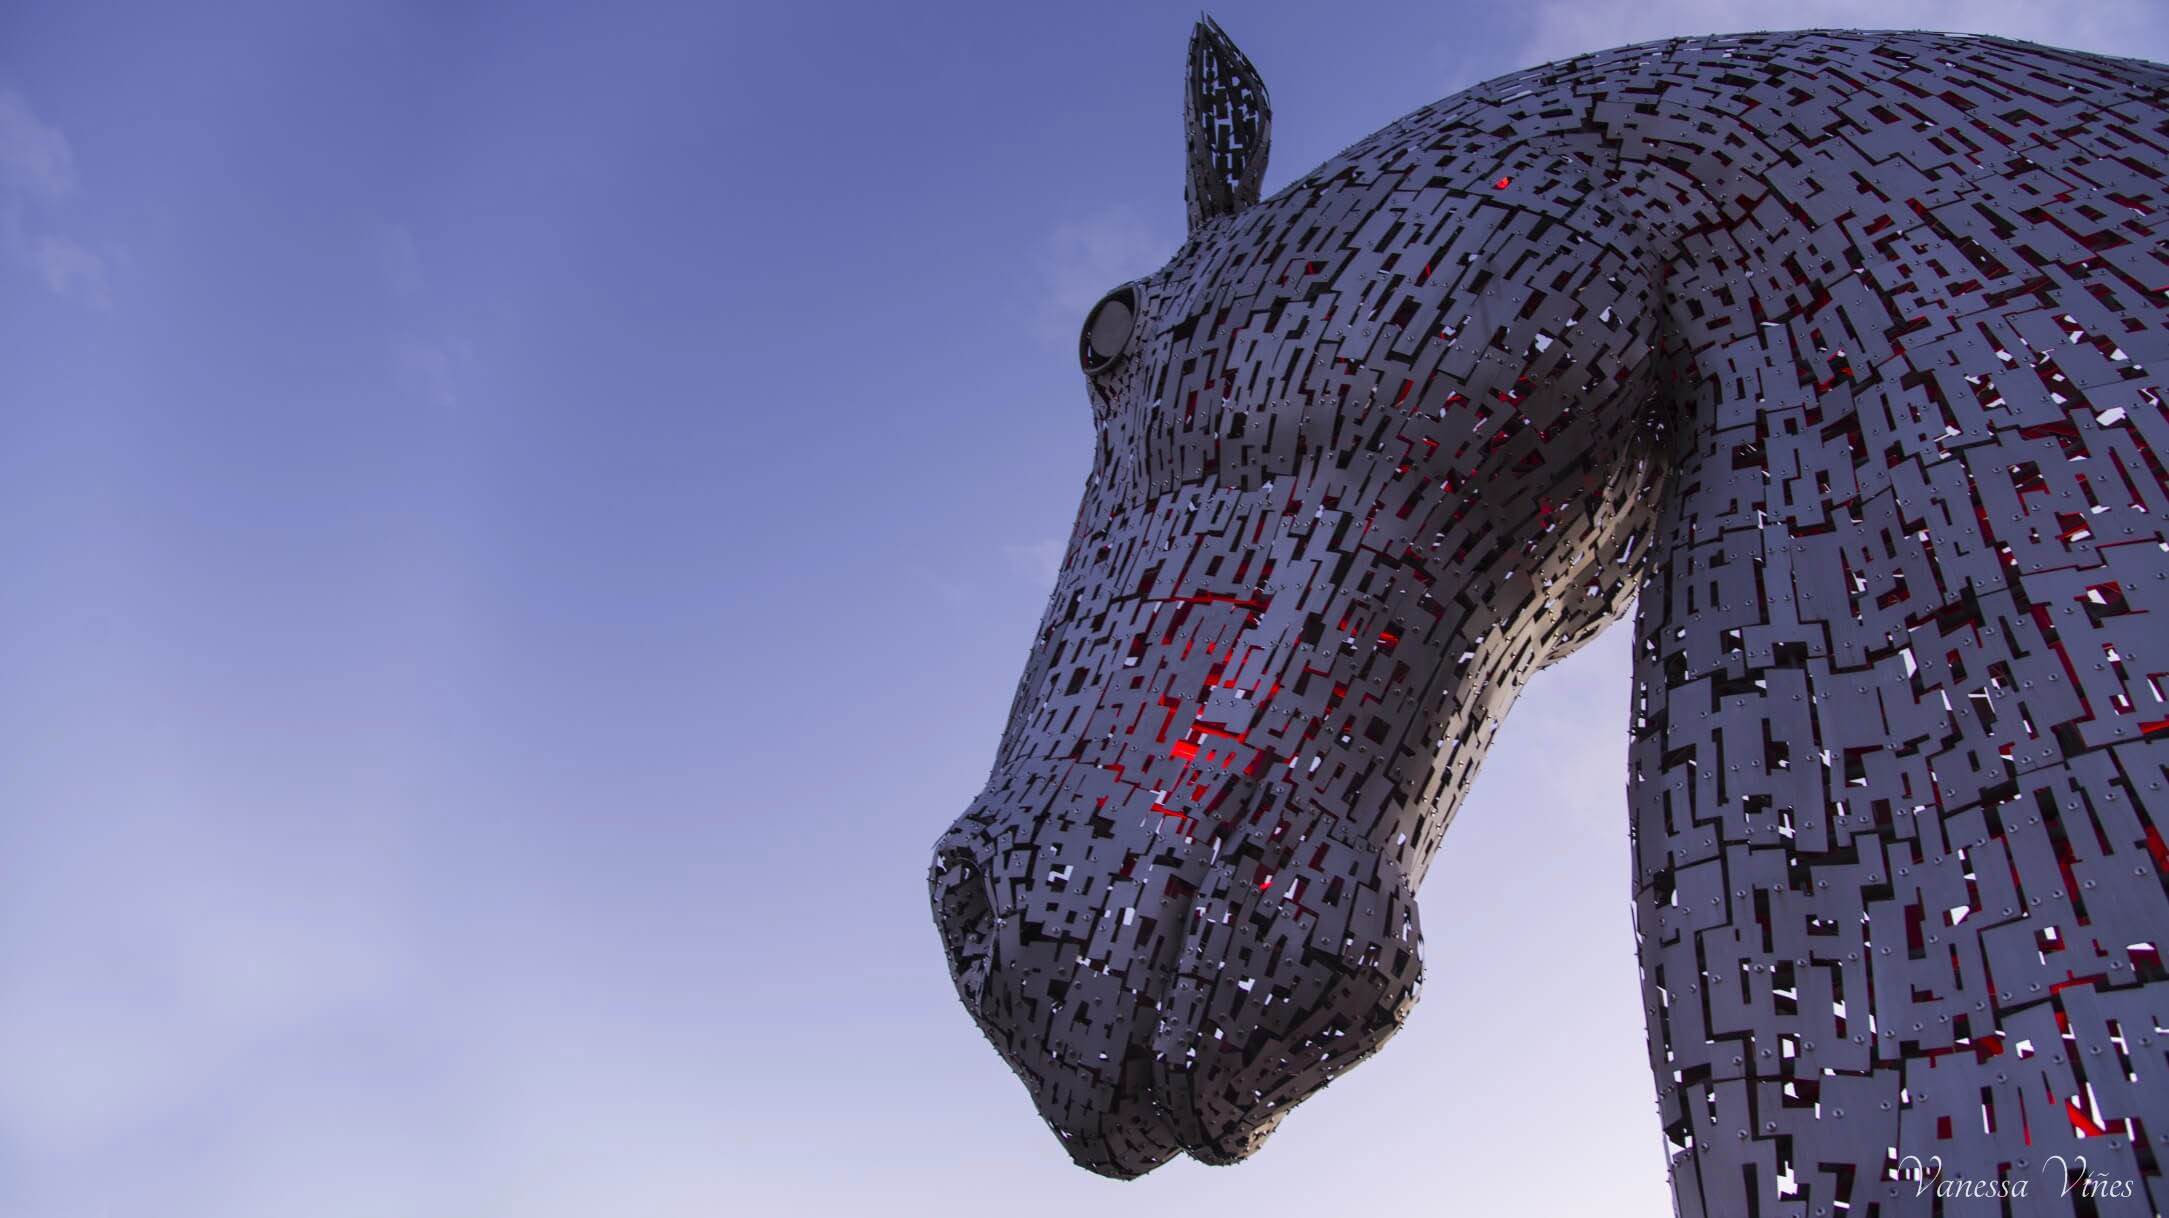 The Kelpies - Head in red